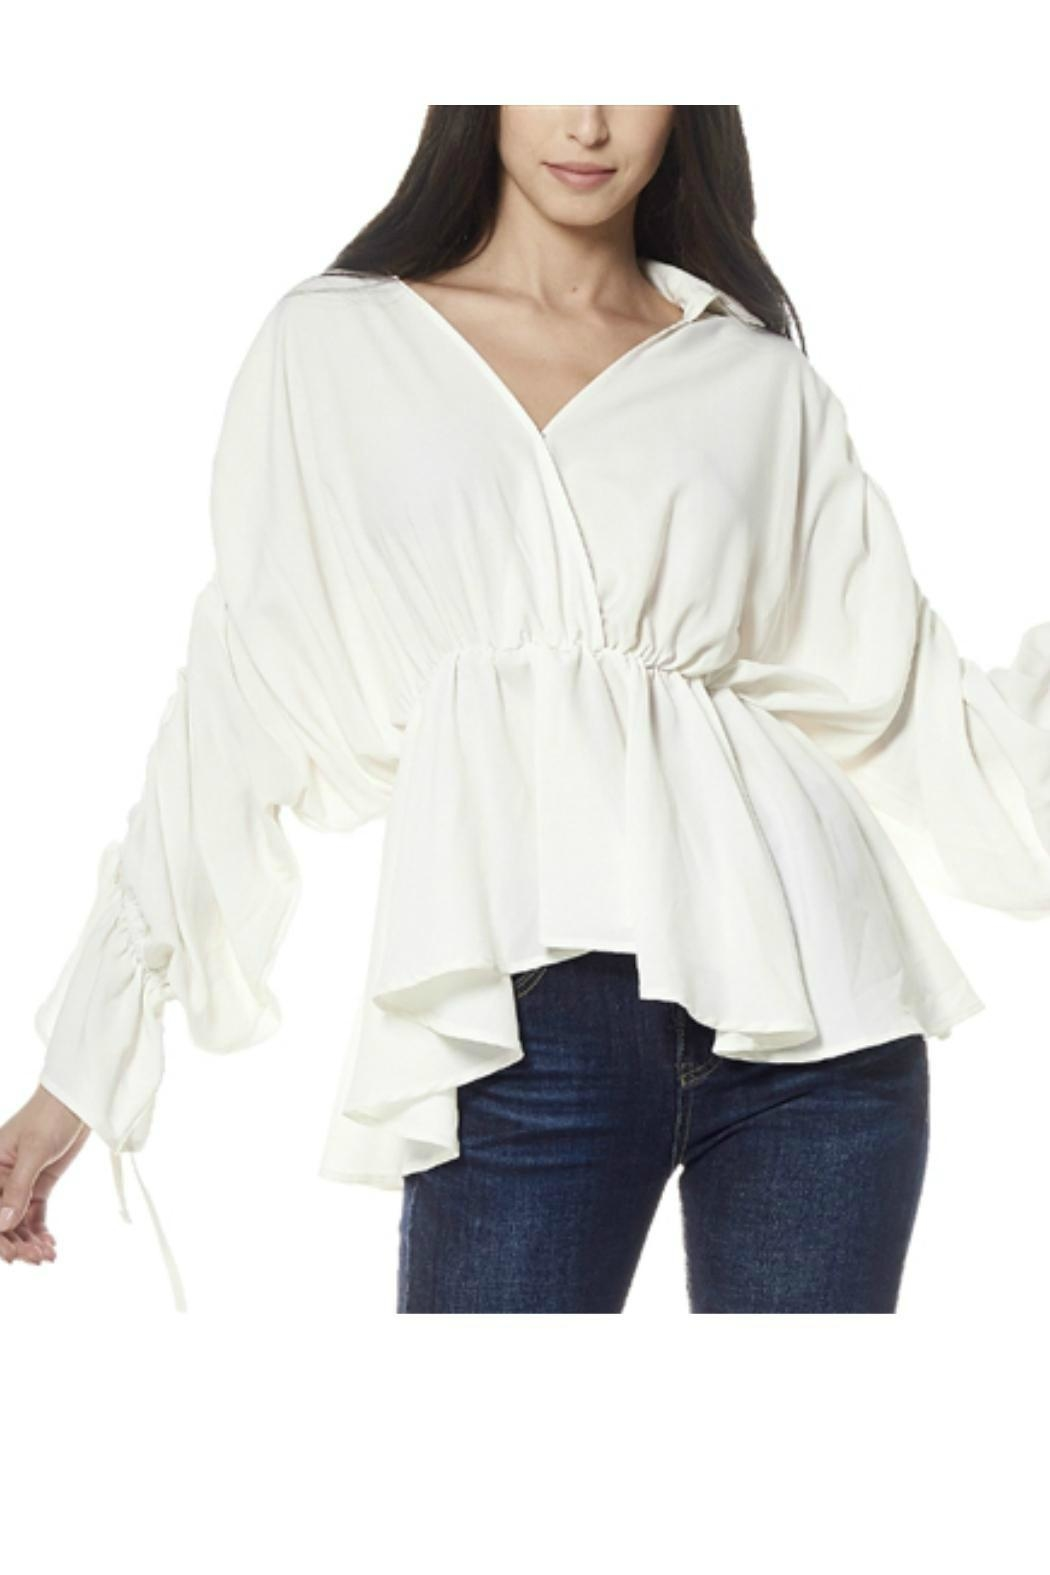 Gracia Gathered Sleeve Top - Main Image